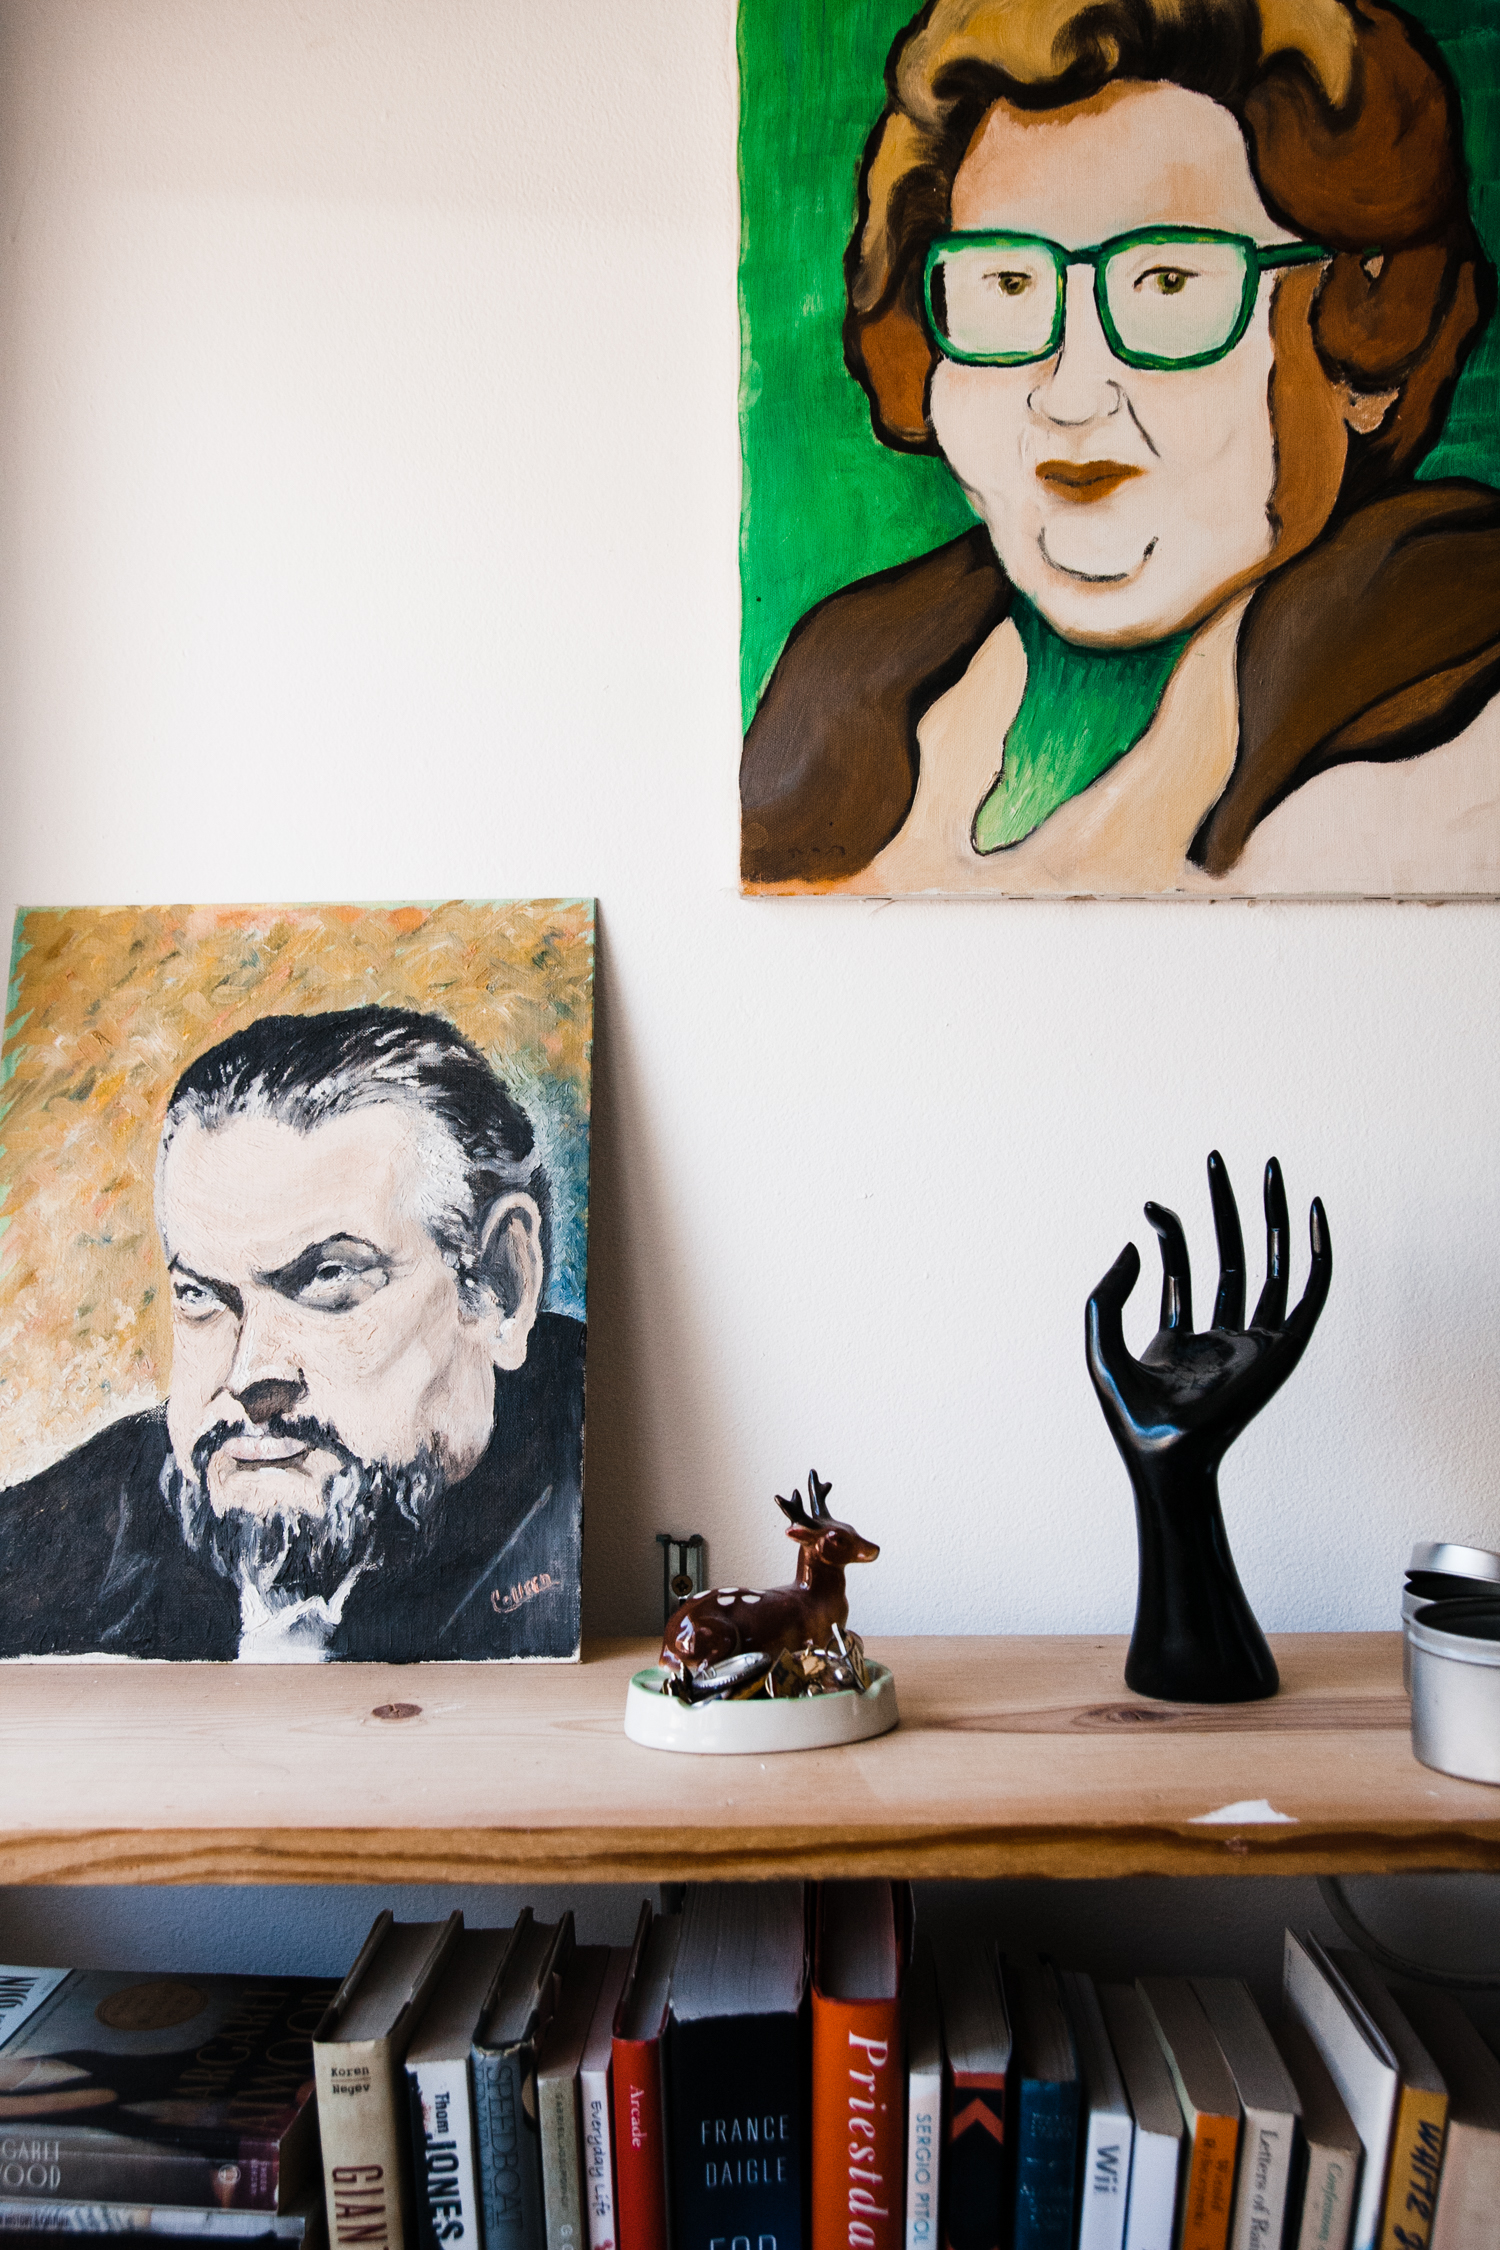 Sarah's grandmother painted these portraits–Orson Wells and herself.